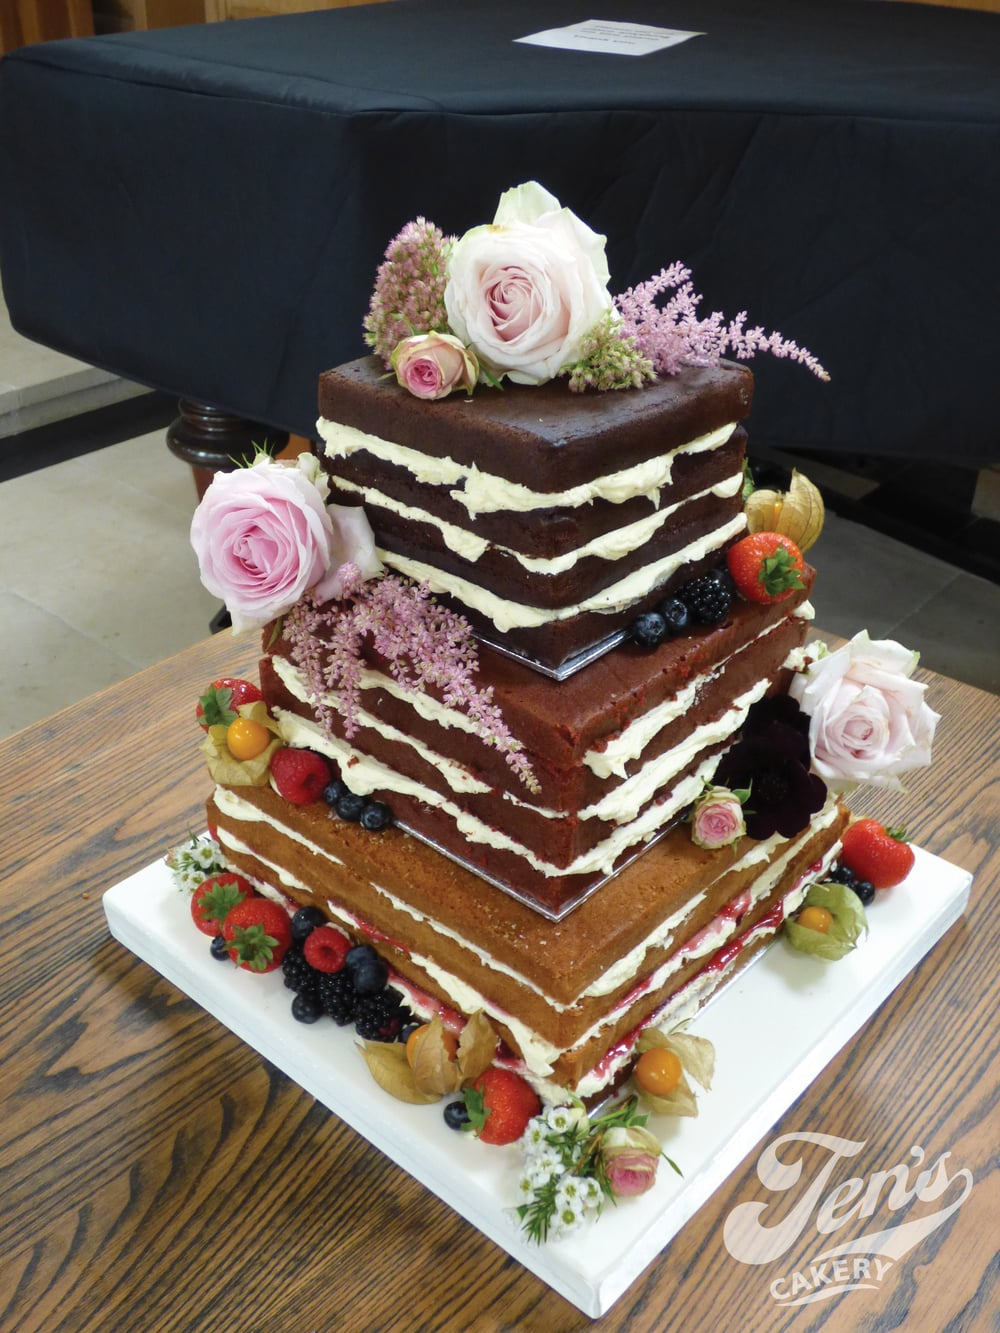 Whilst most naked cakes are round, I think square works just as well.